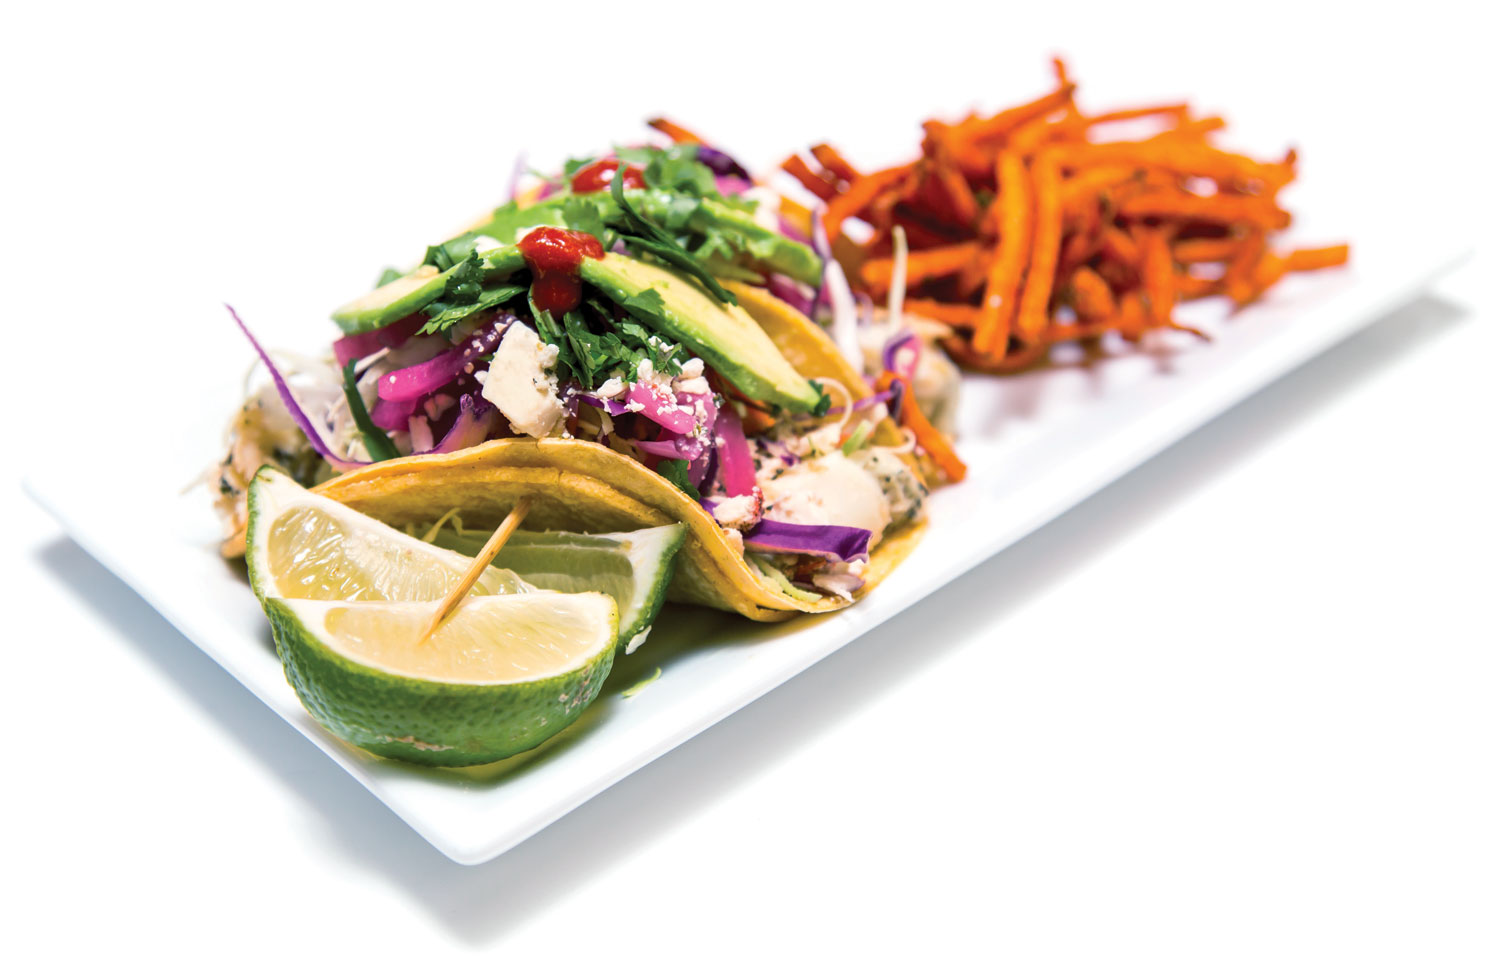 WHOLESOME-GRUB-HEALTH-VEGAN-VEGETARIAN-RESTAURANT-PLANO-MAGAZINE-FISH-TACOS